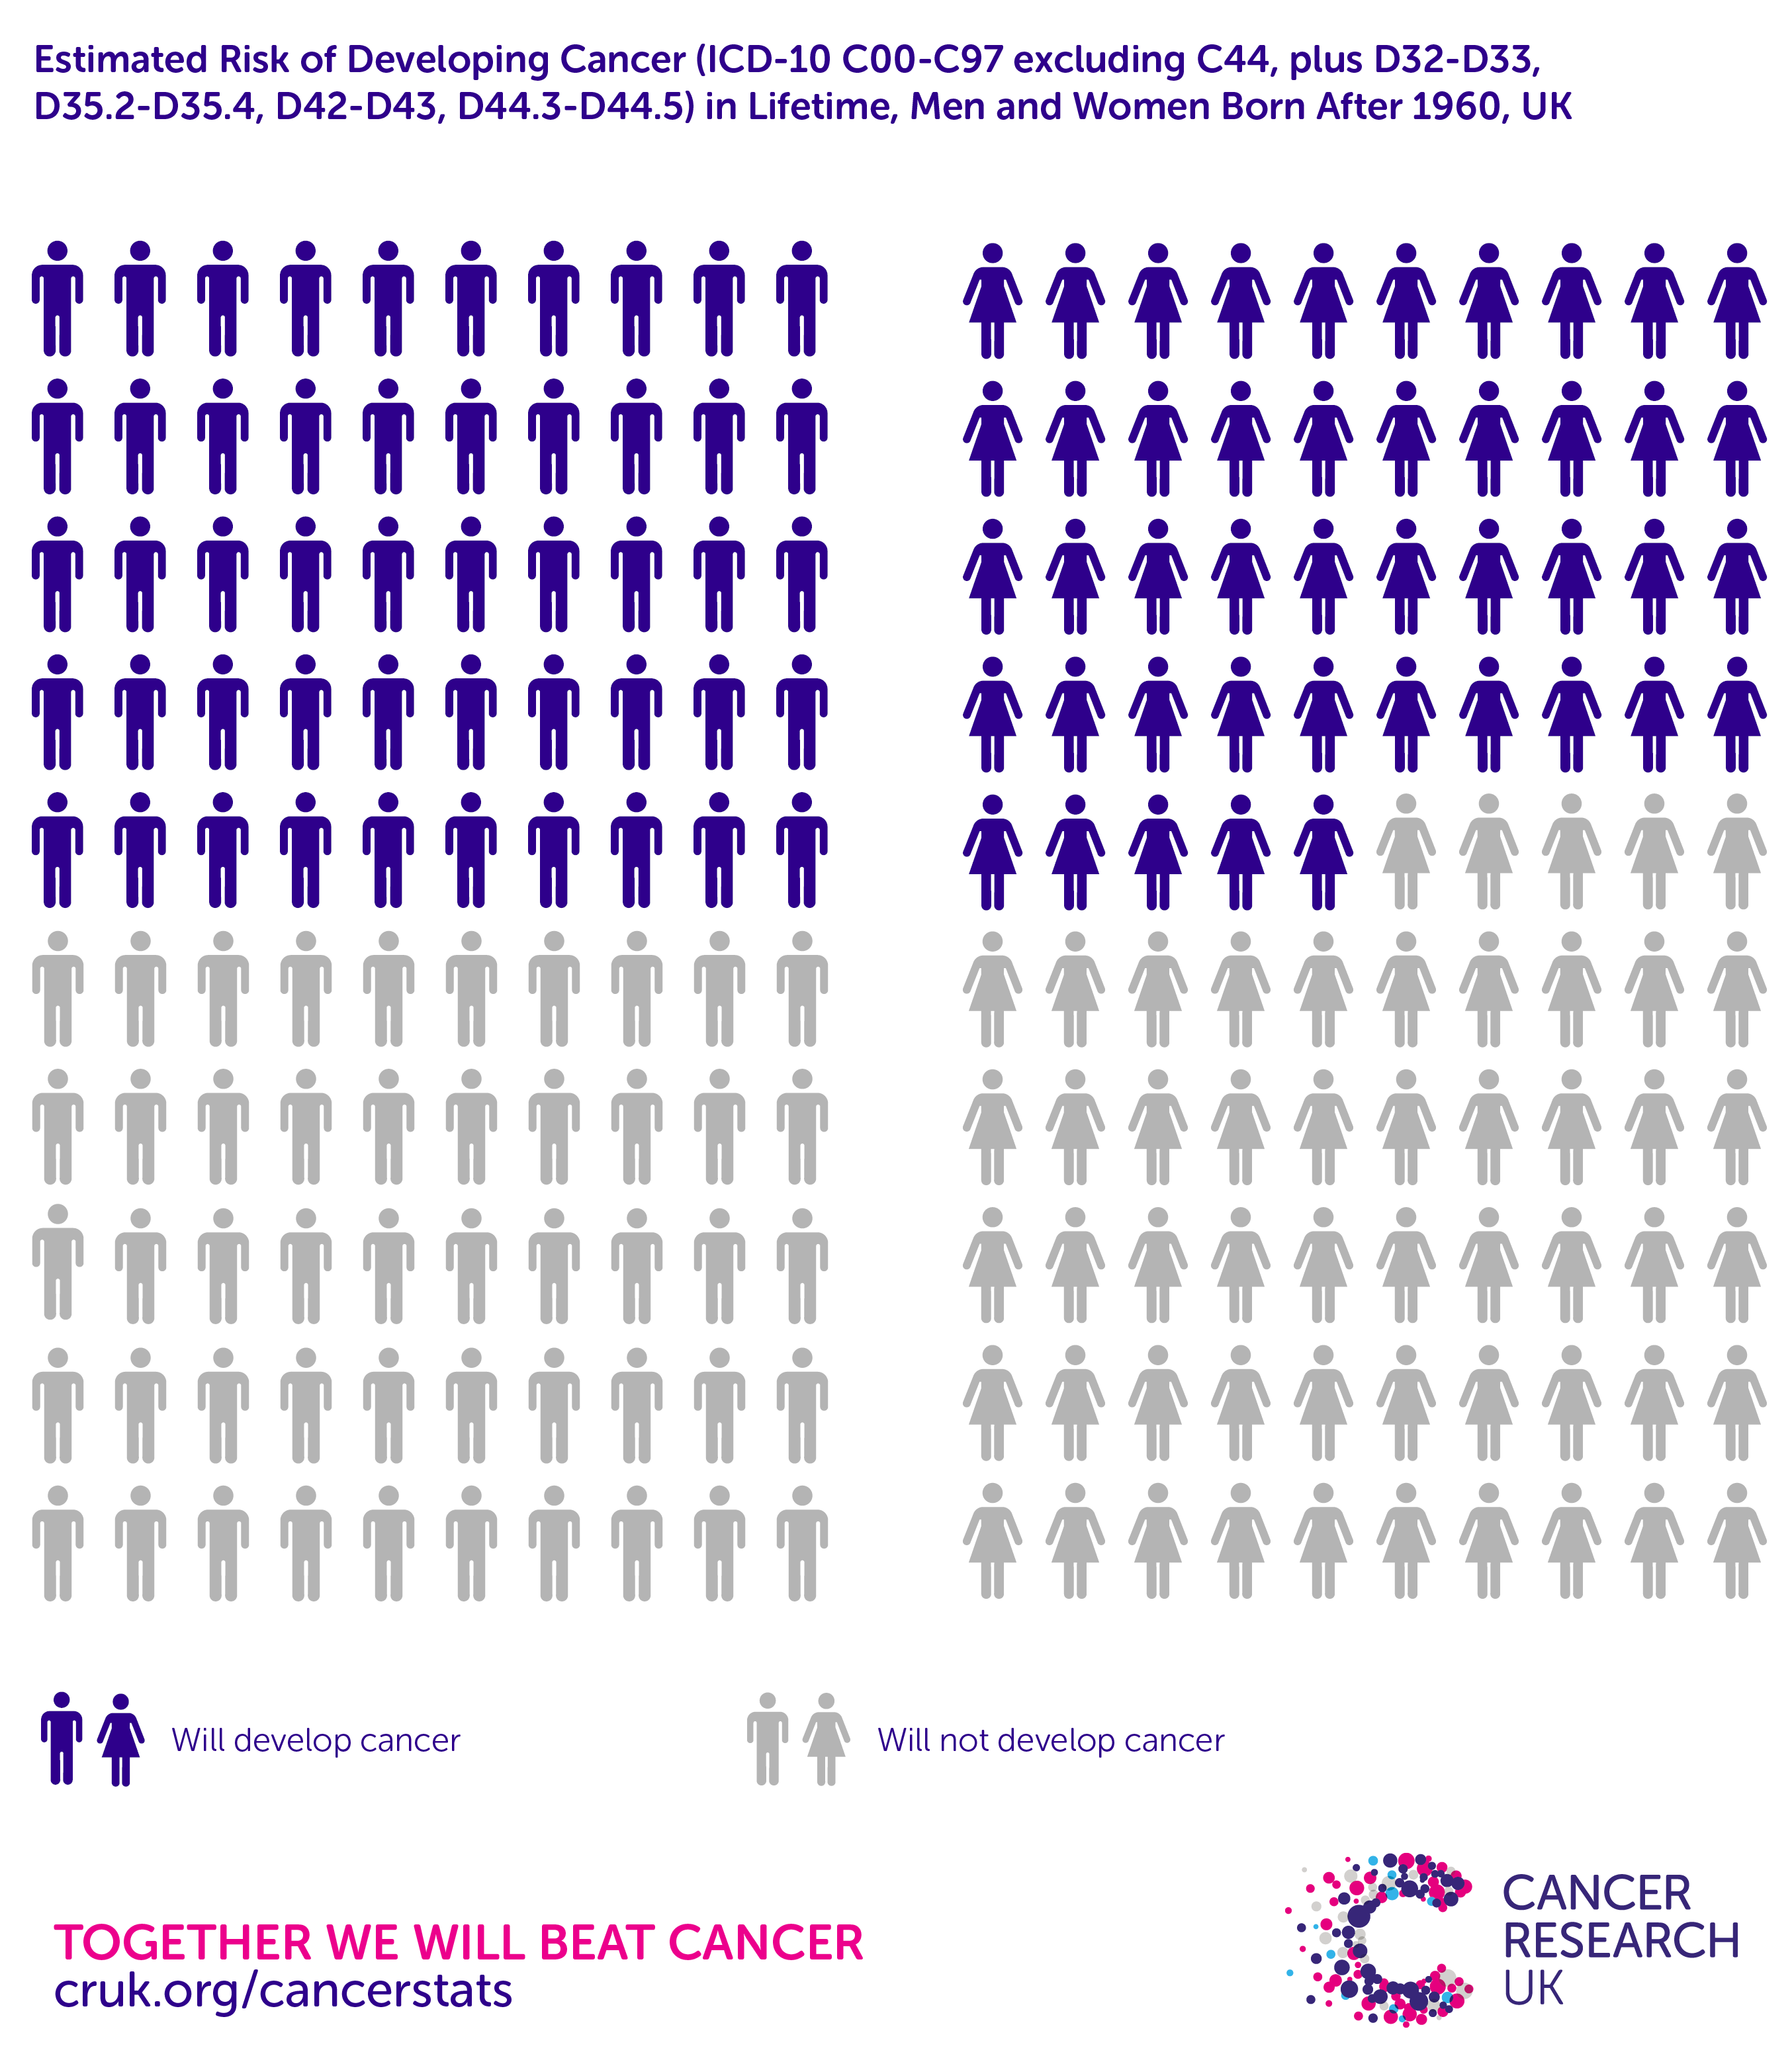 Diagram of All Cancers Combined, Estimated Lifetime Risk of Being Diagnosed, Men and Women Born After 1960, UK